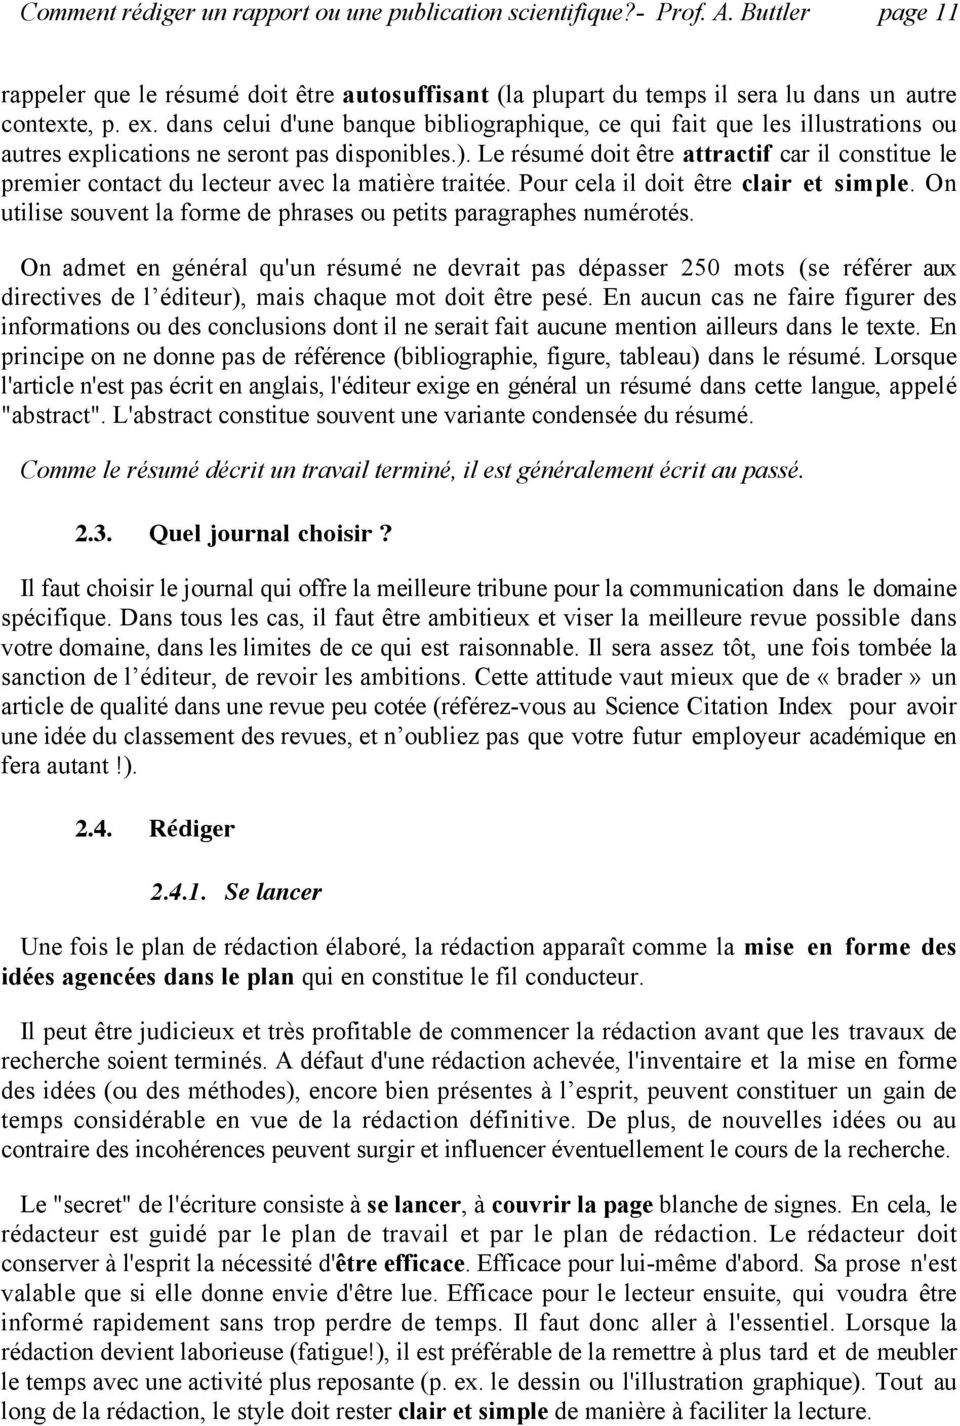 comment r u00e9diger un rapport ou une publication scientifique